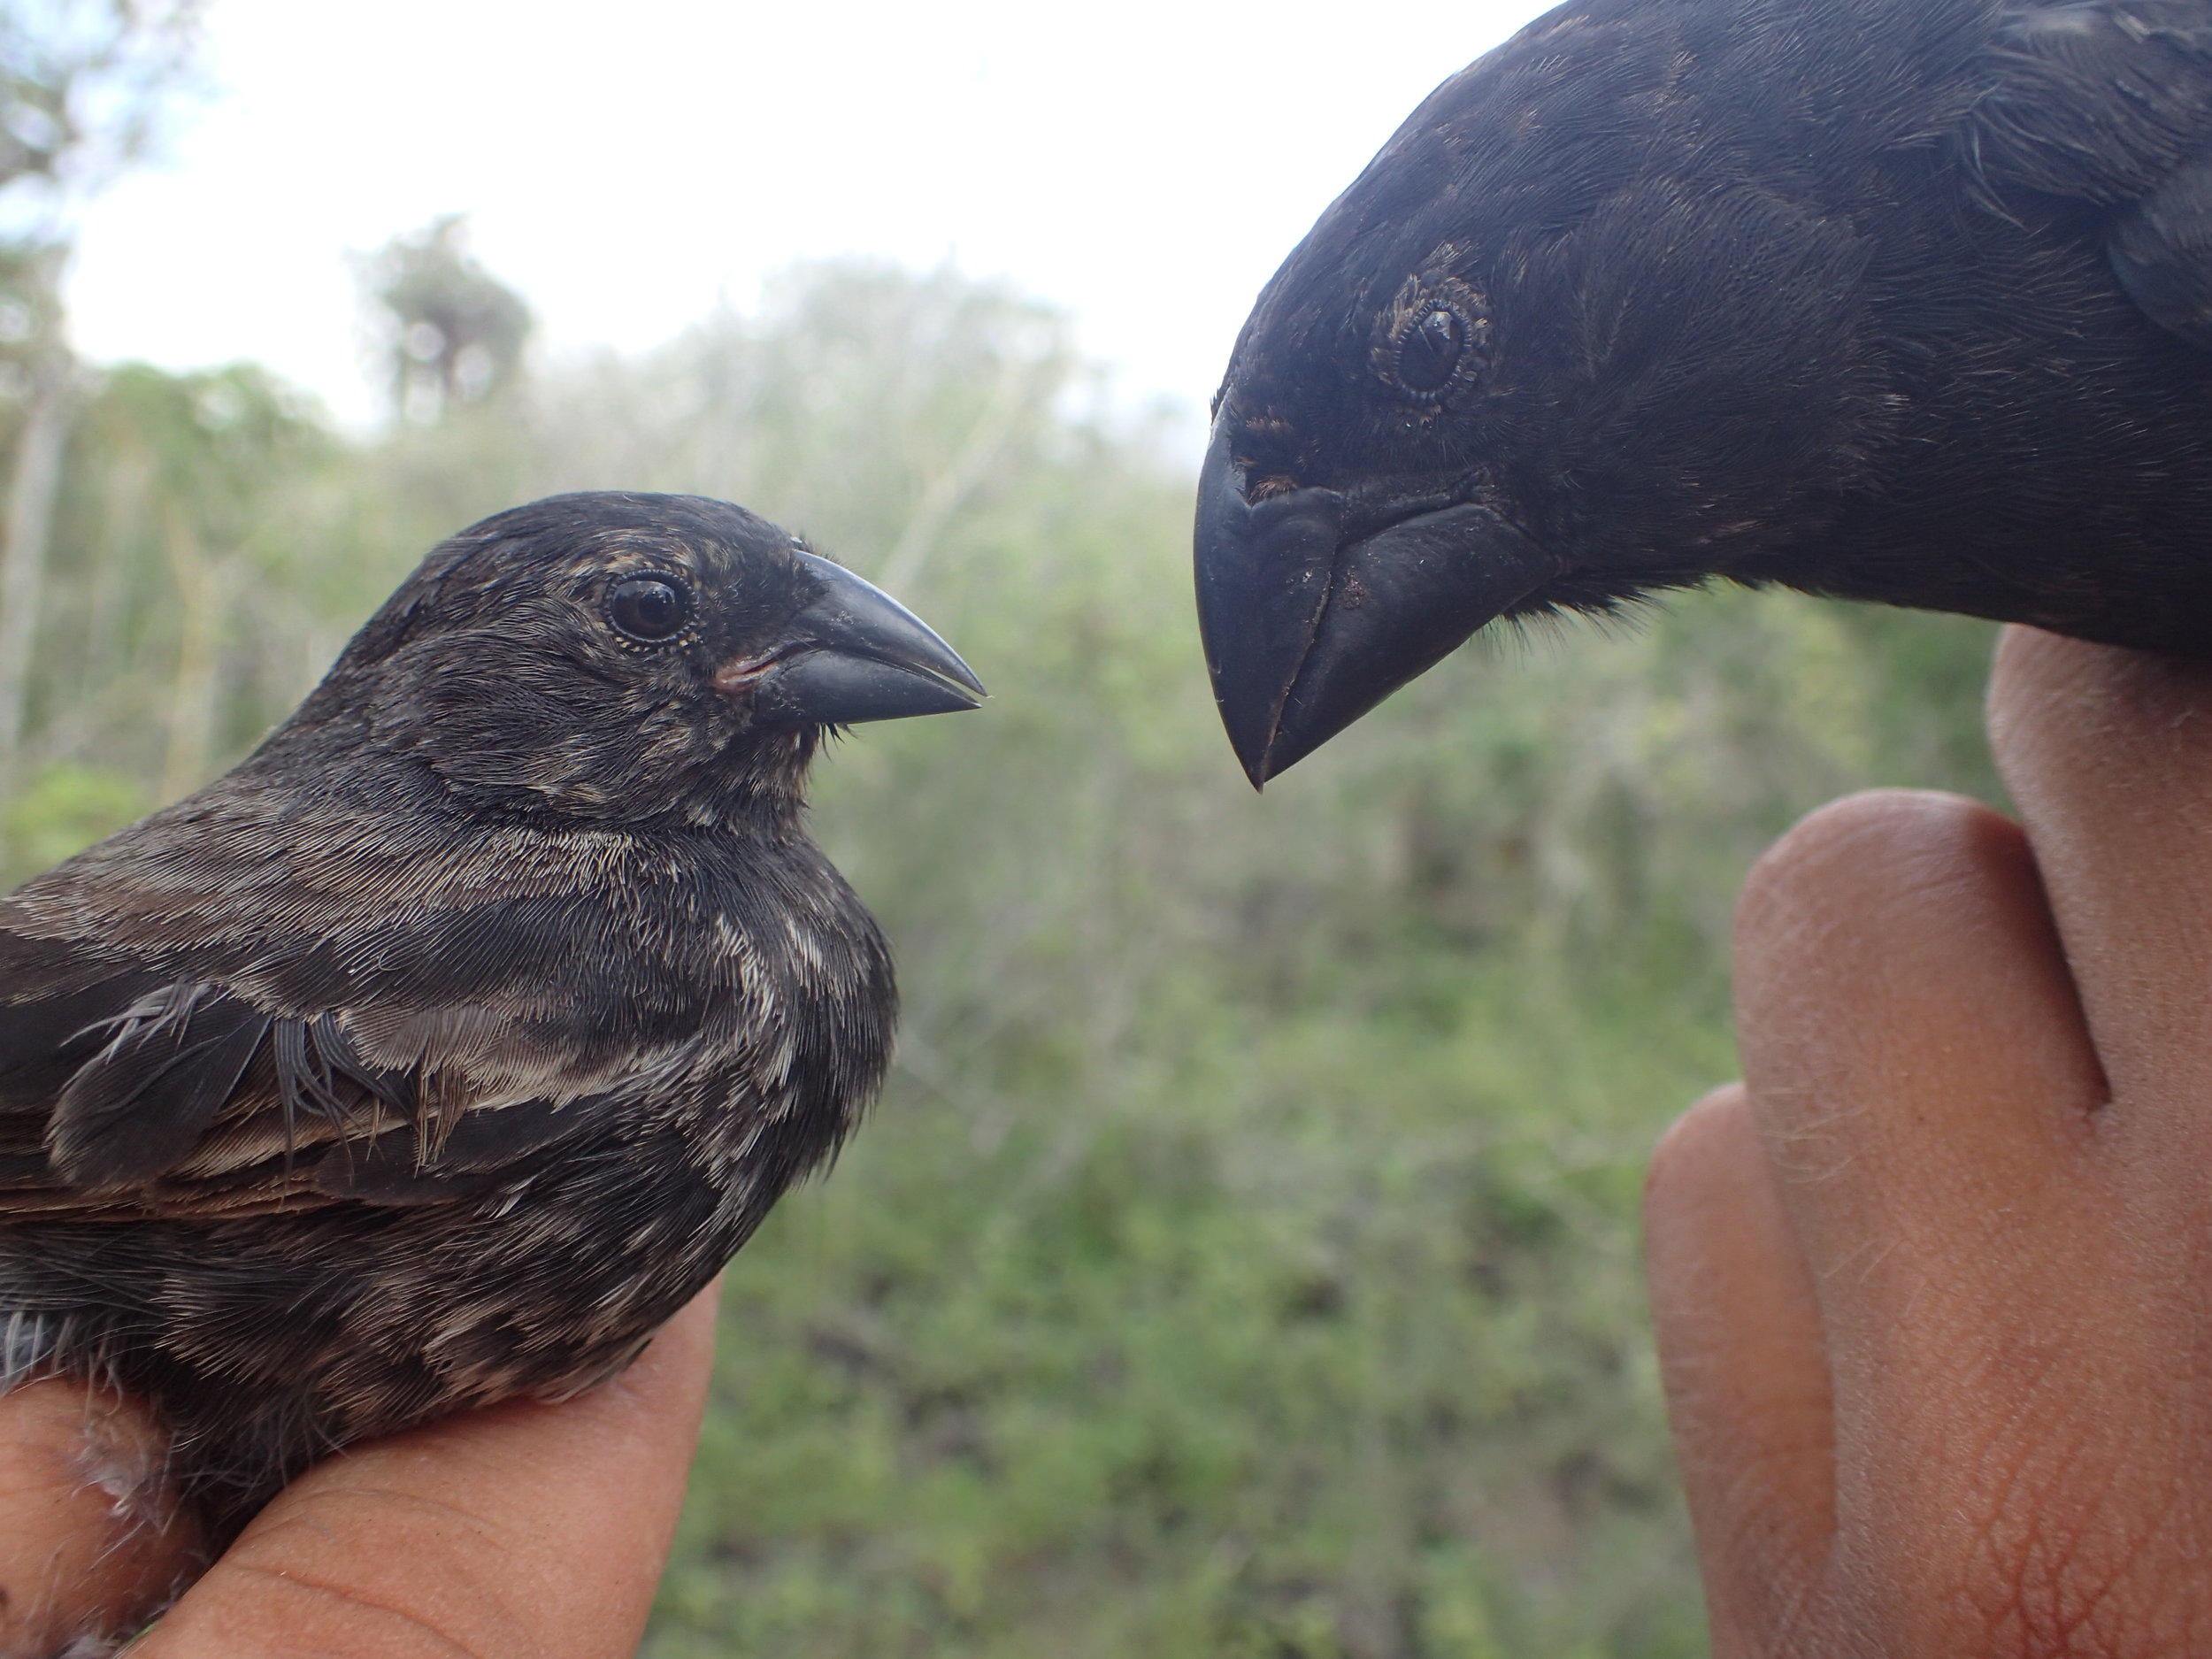 Both small ground finches (left) and medium ground finches (right) show epigenetic changes between urban and rural habitats.